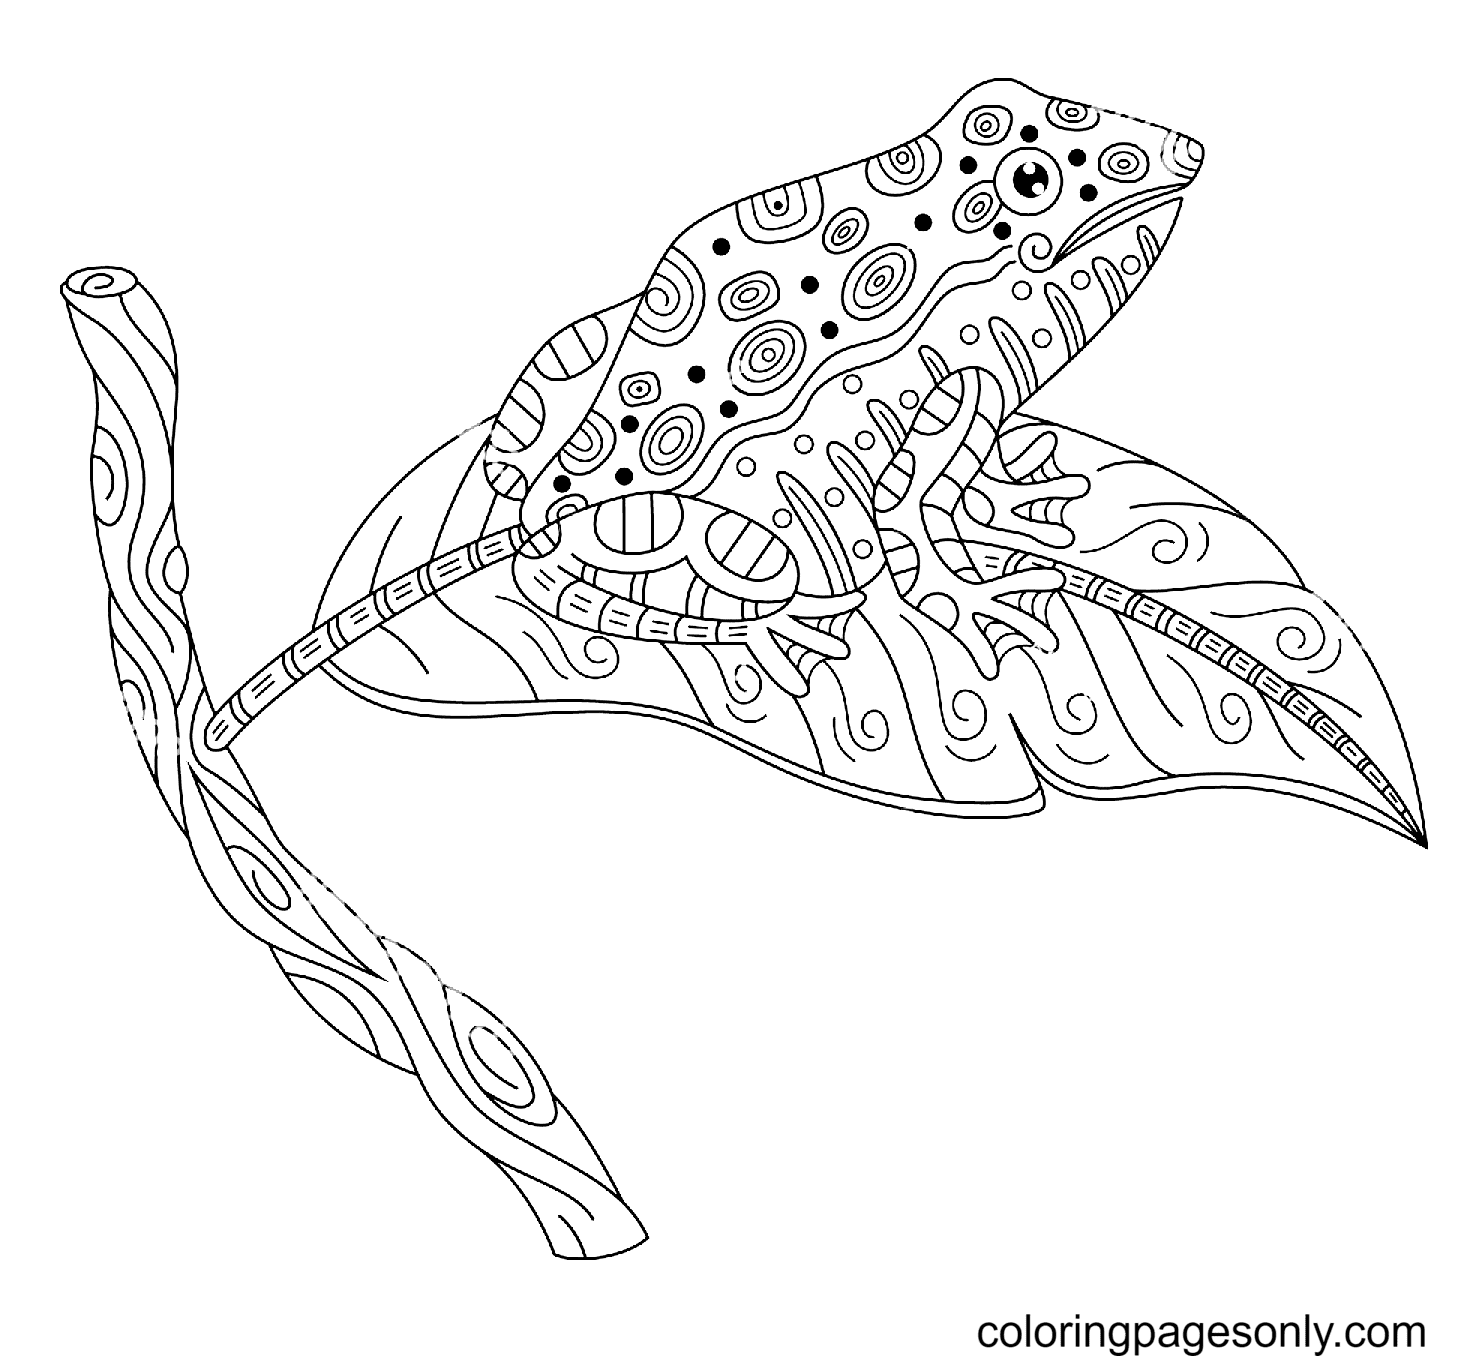 Zentangle Frog Sitting On a Tree Leaf Coloring Page